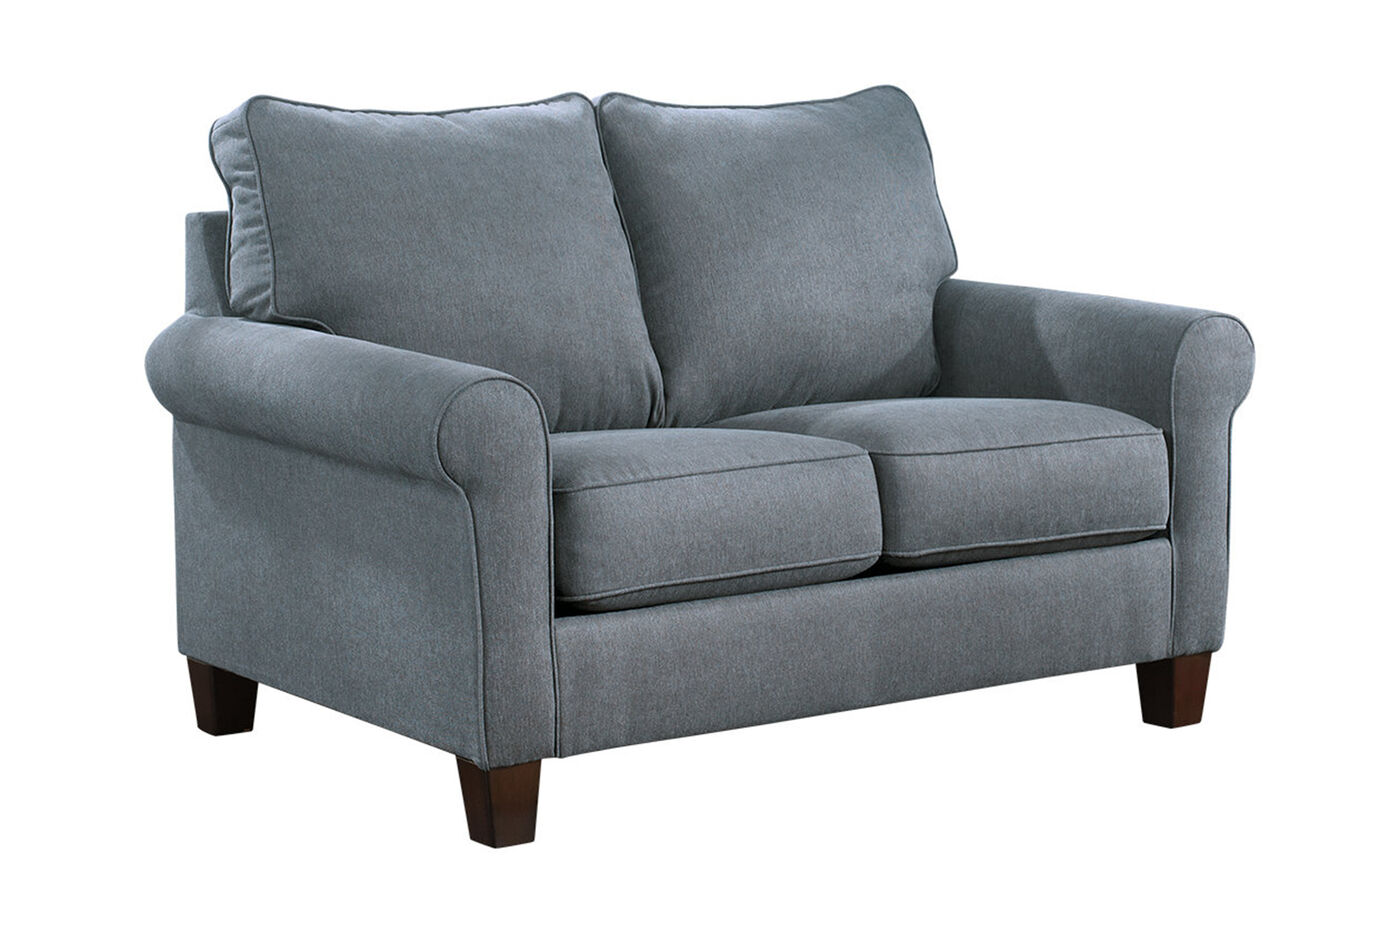 Contemporary 58 Twin Sleeper Loveseat In Denim Blue Mathis Brothers Furniture